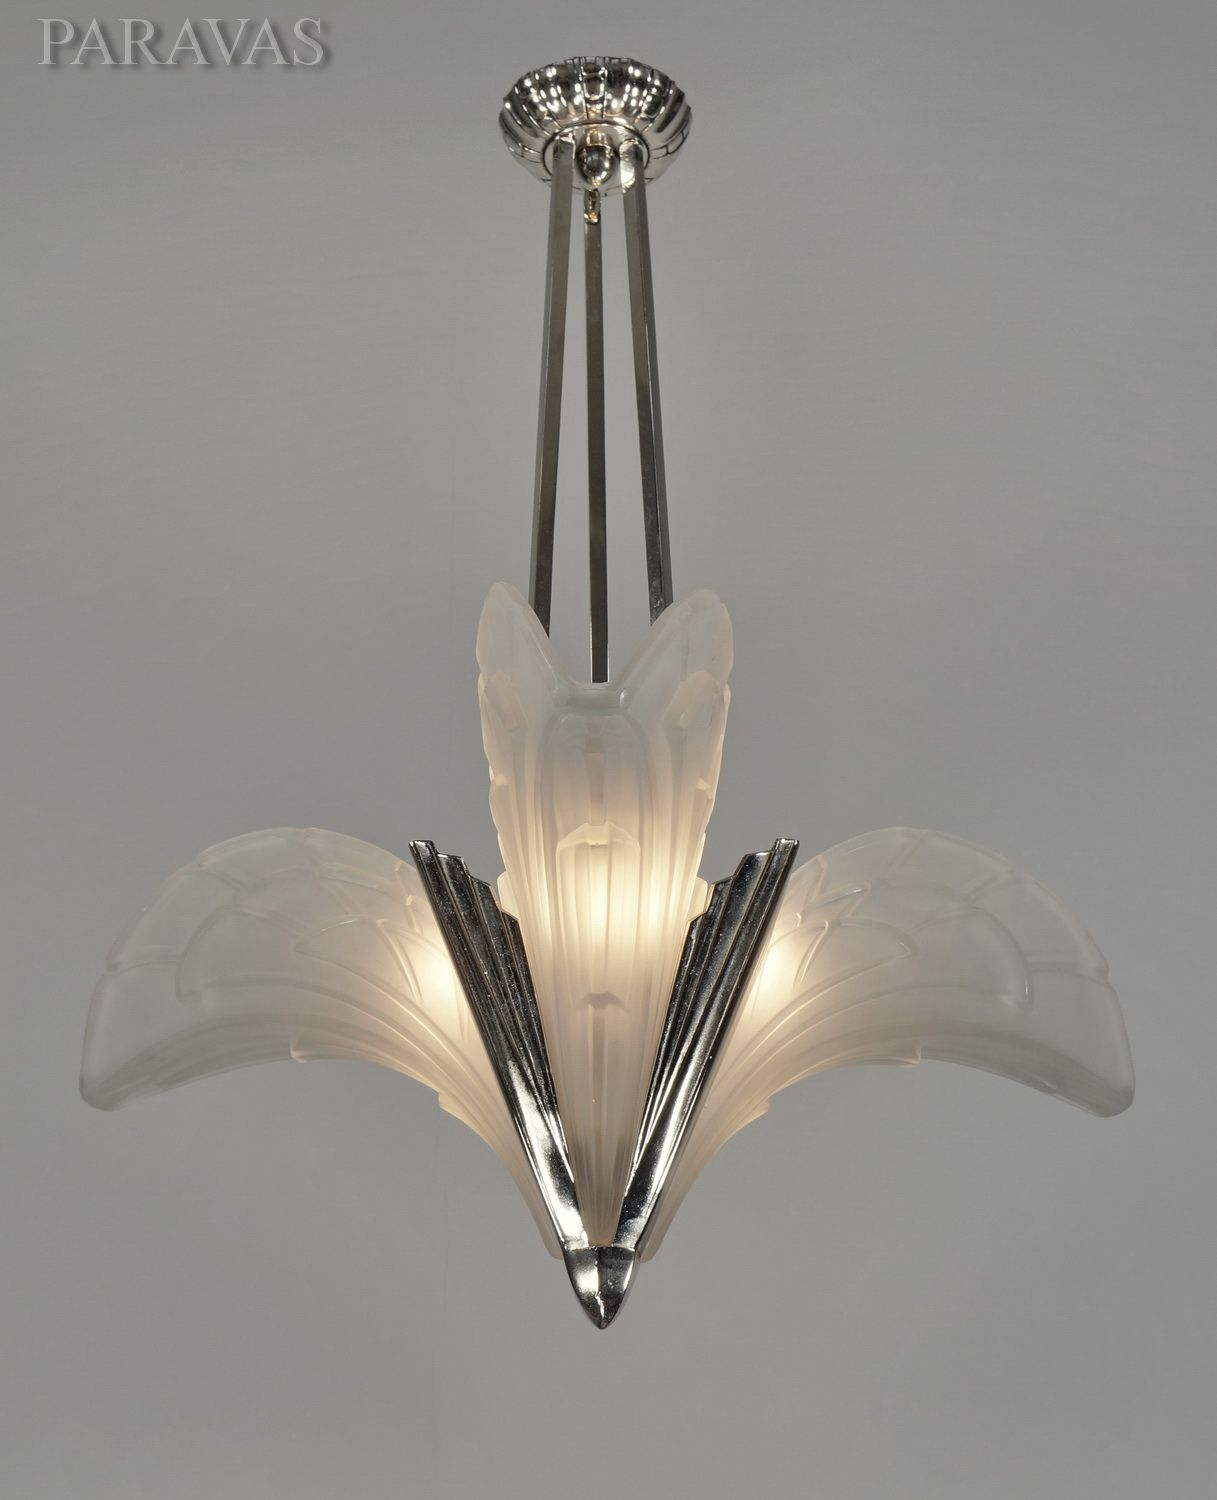 French 1930 art deco chandelier with slip shades by ejg paravas french 1930 art deco chandelier with slip shades by ejg paravas ebay arubaitofo Choice Image